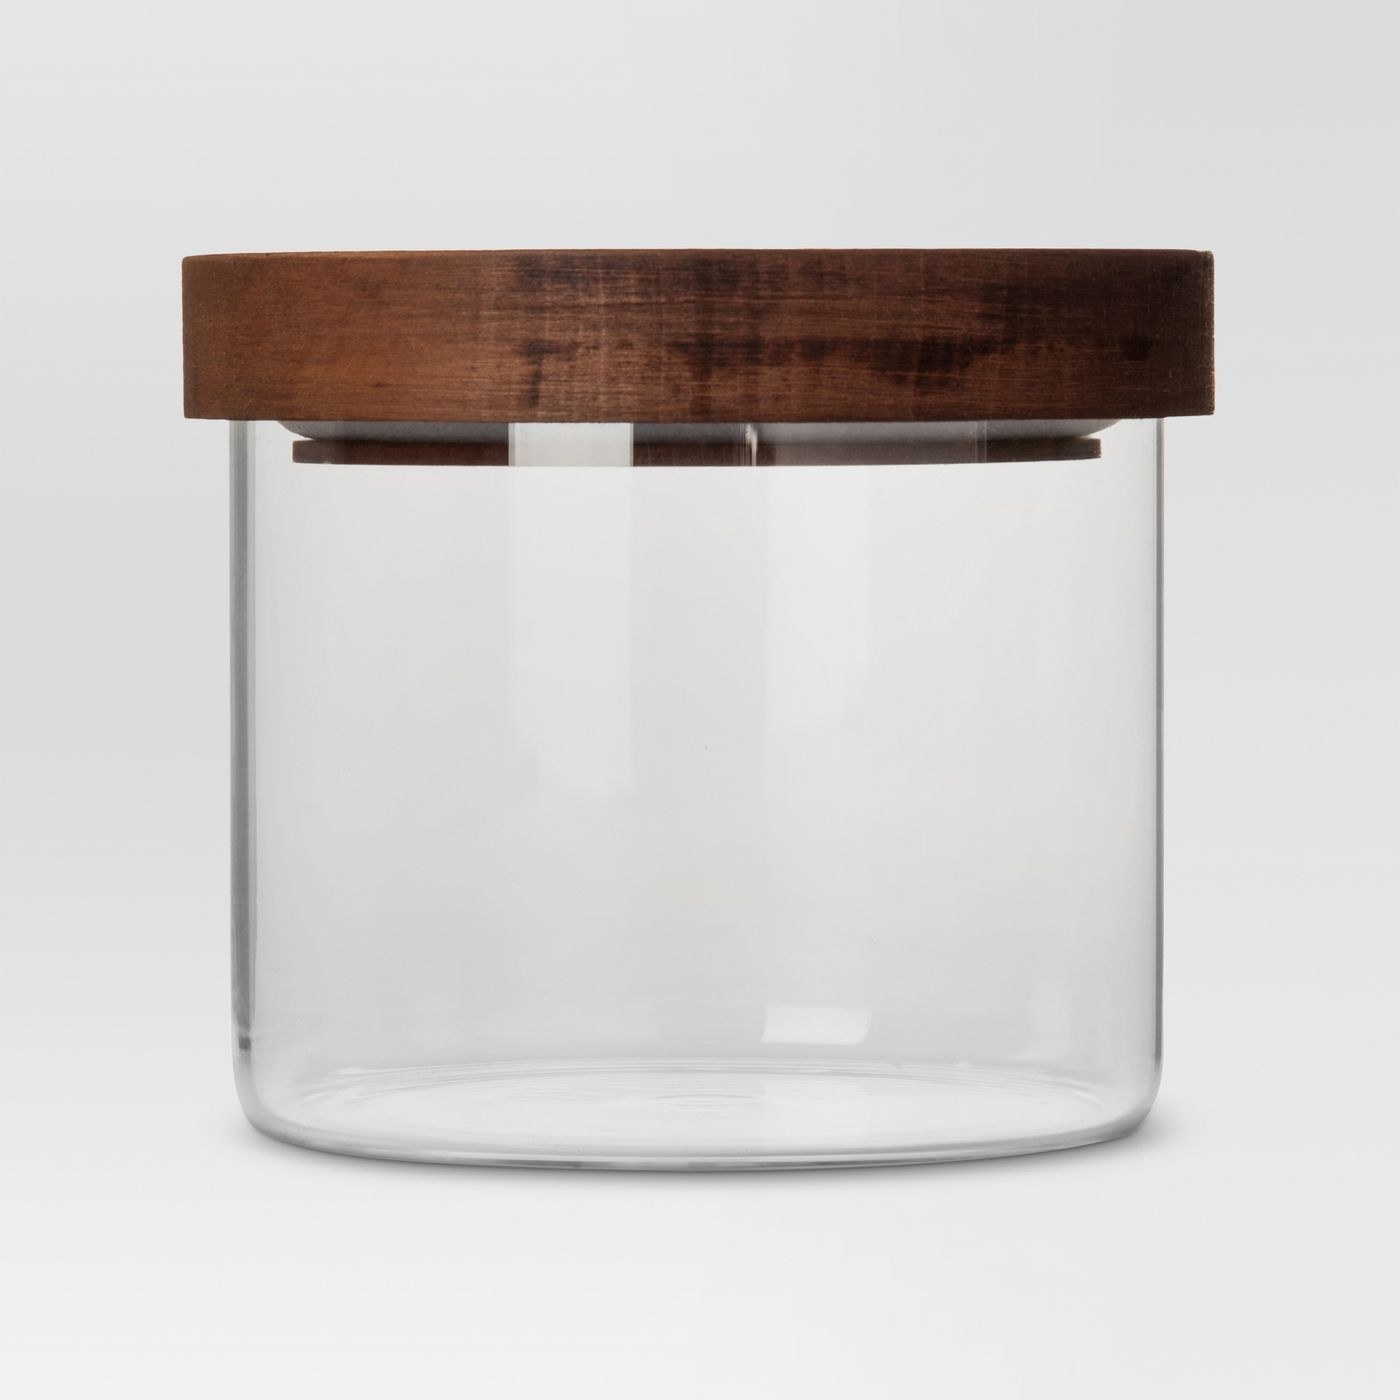 The glass storage container